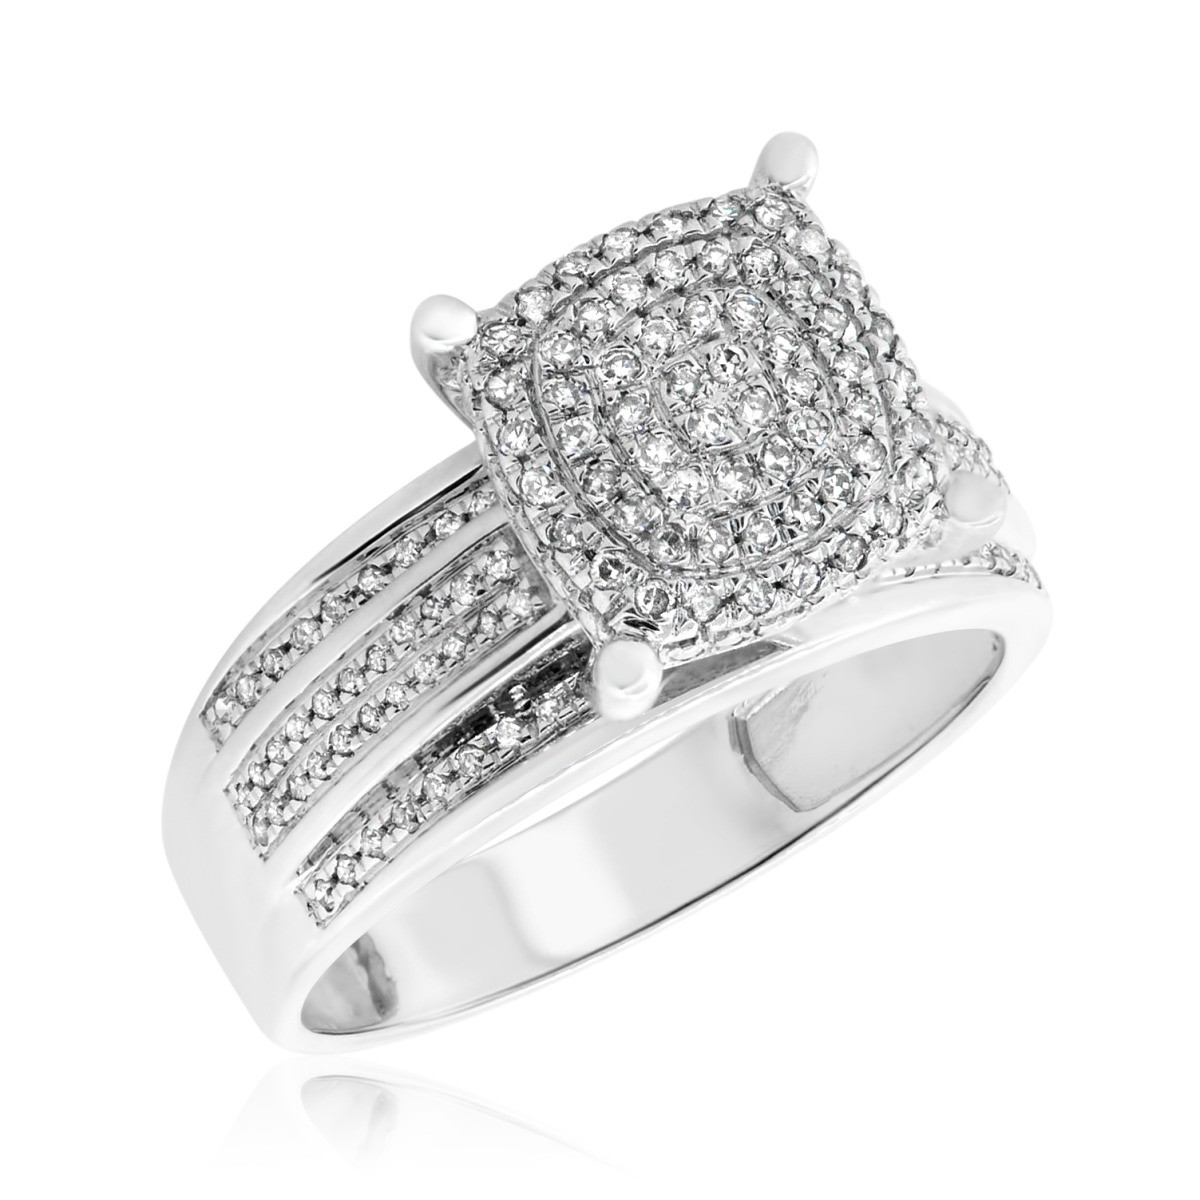 1/3 CT. T.W. Diamond Engagement Ring 10K White Gold